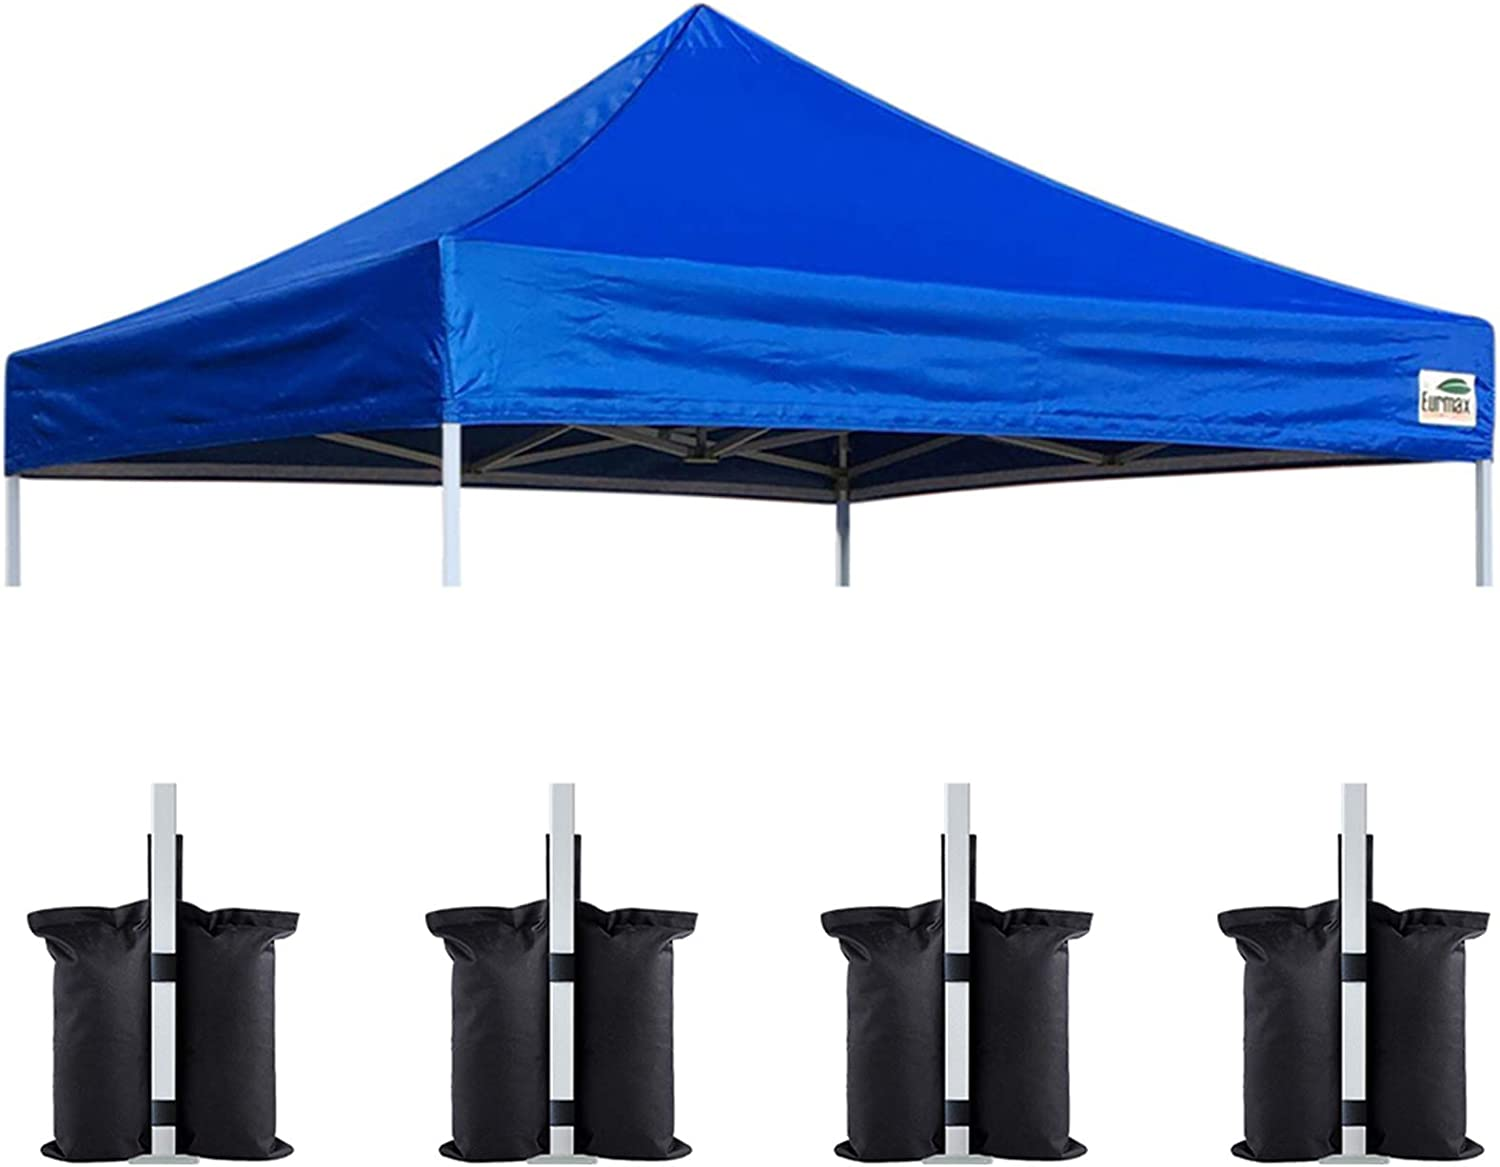 Eurmax 10x10 Pop Up Canopy Replacement Super popular specialty store Tent Fort Worth Mall Cover Top In